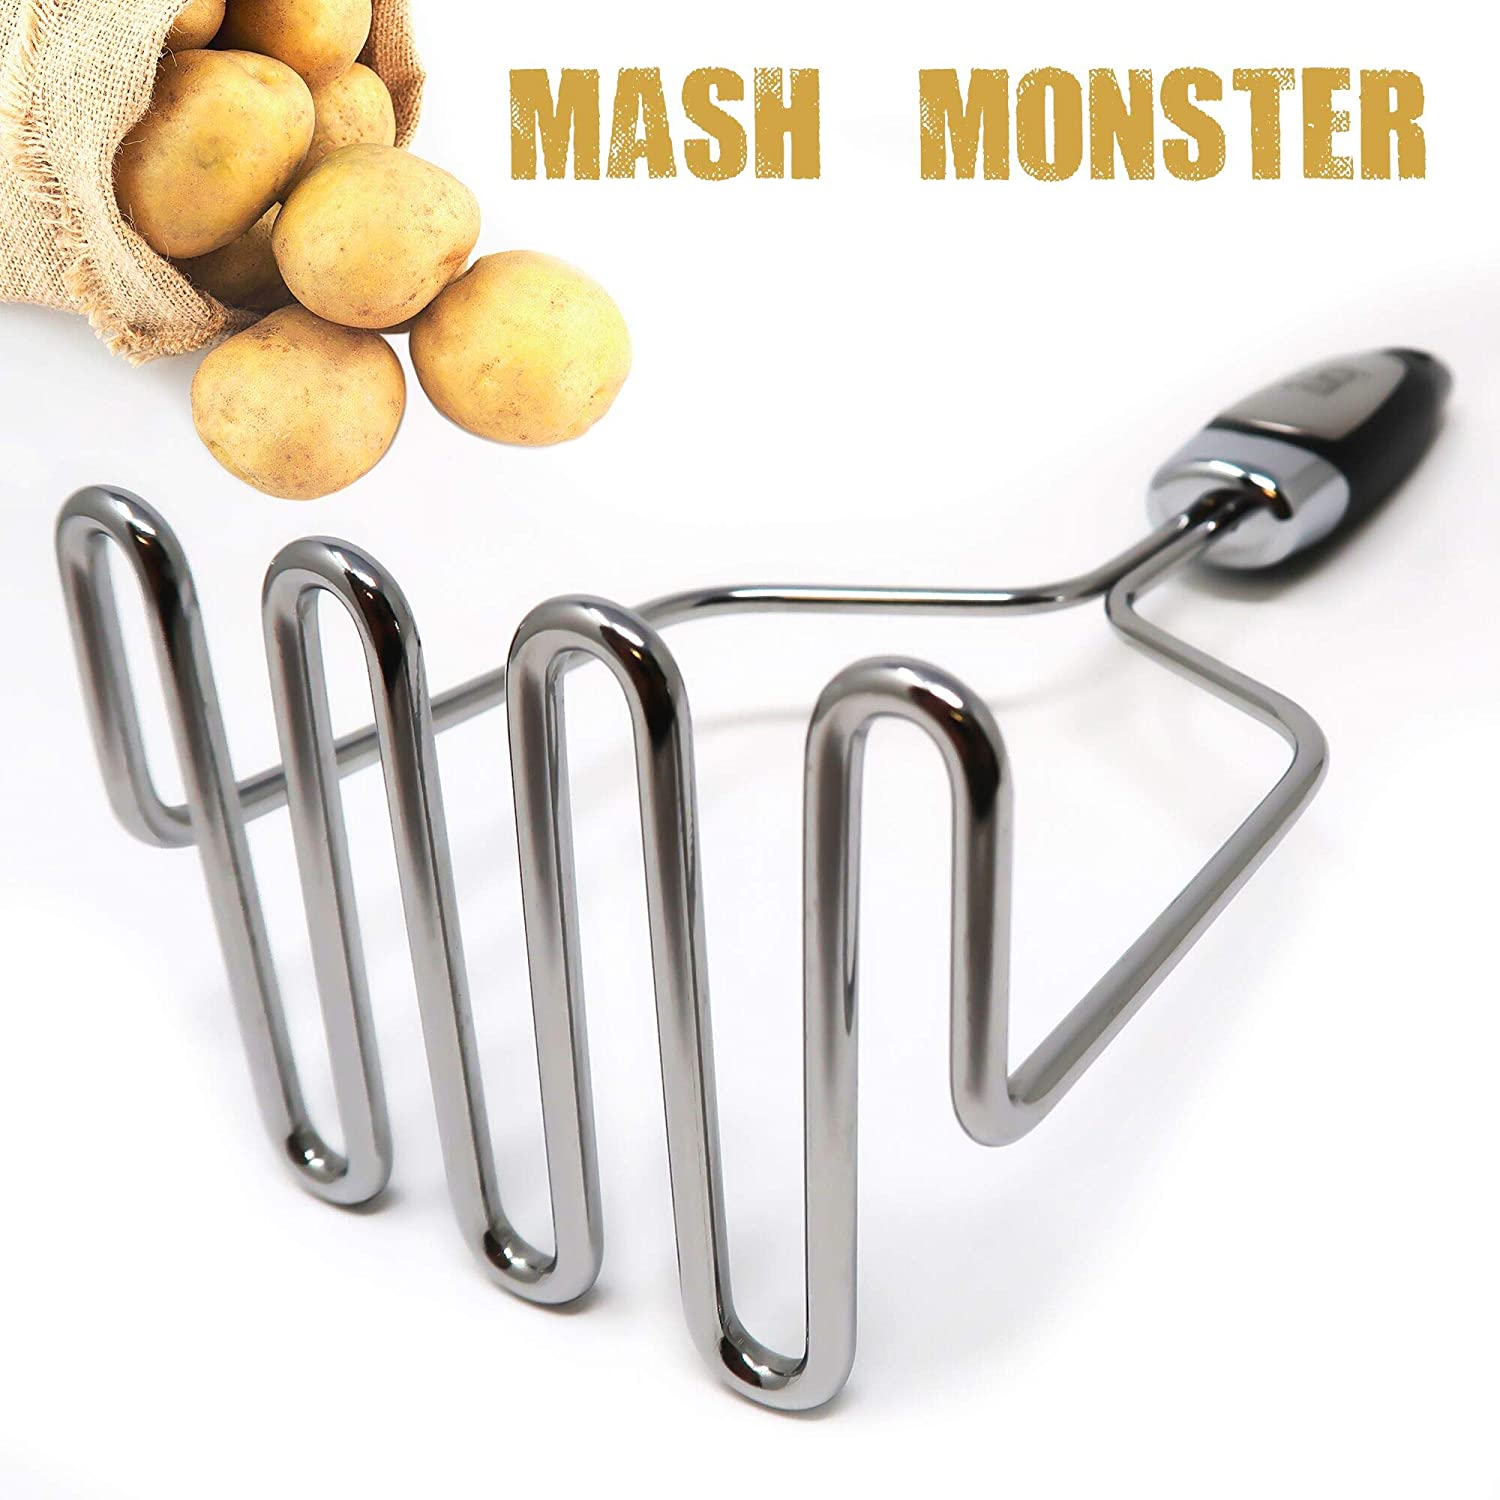 Potato Masher Stainless Steel - Premium Masher Hand Tool and Potato Smasher Metal Wire Utensil for Best Mash for Bean, Avocado, Egg, Mini Mashed Potatoe, Banana & Other Food by Zulay Kitchen